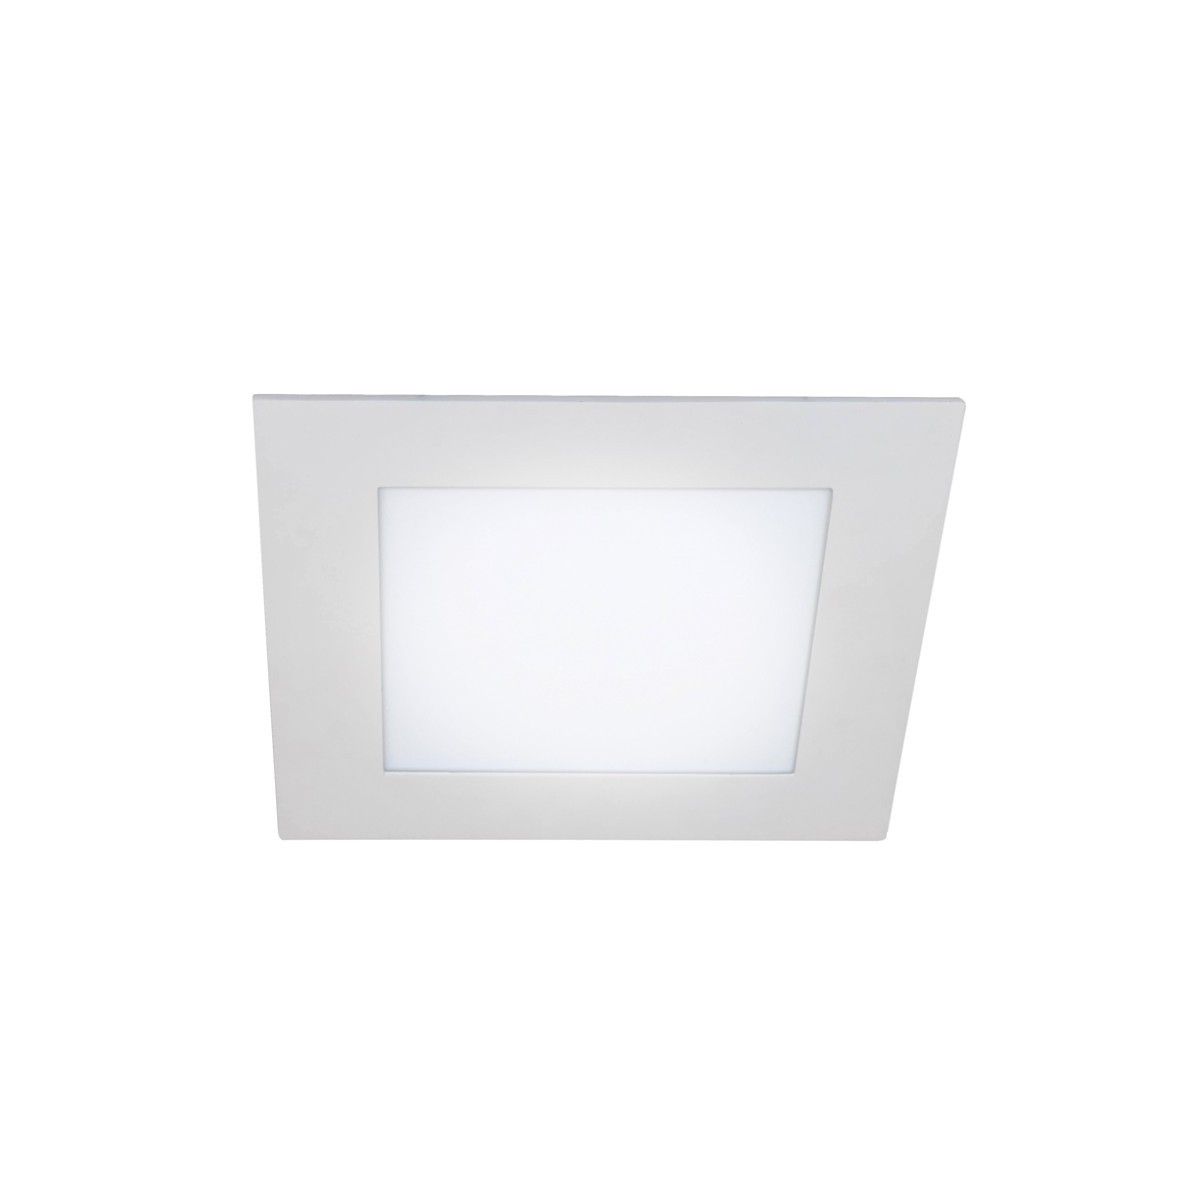 Know LED Downlight 6W 4000K Squared White